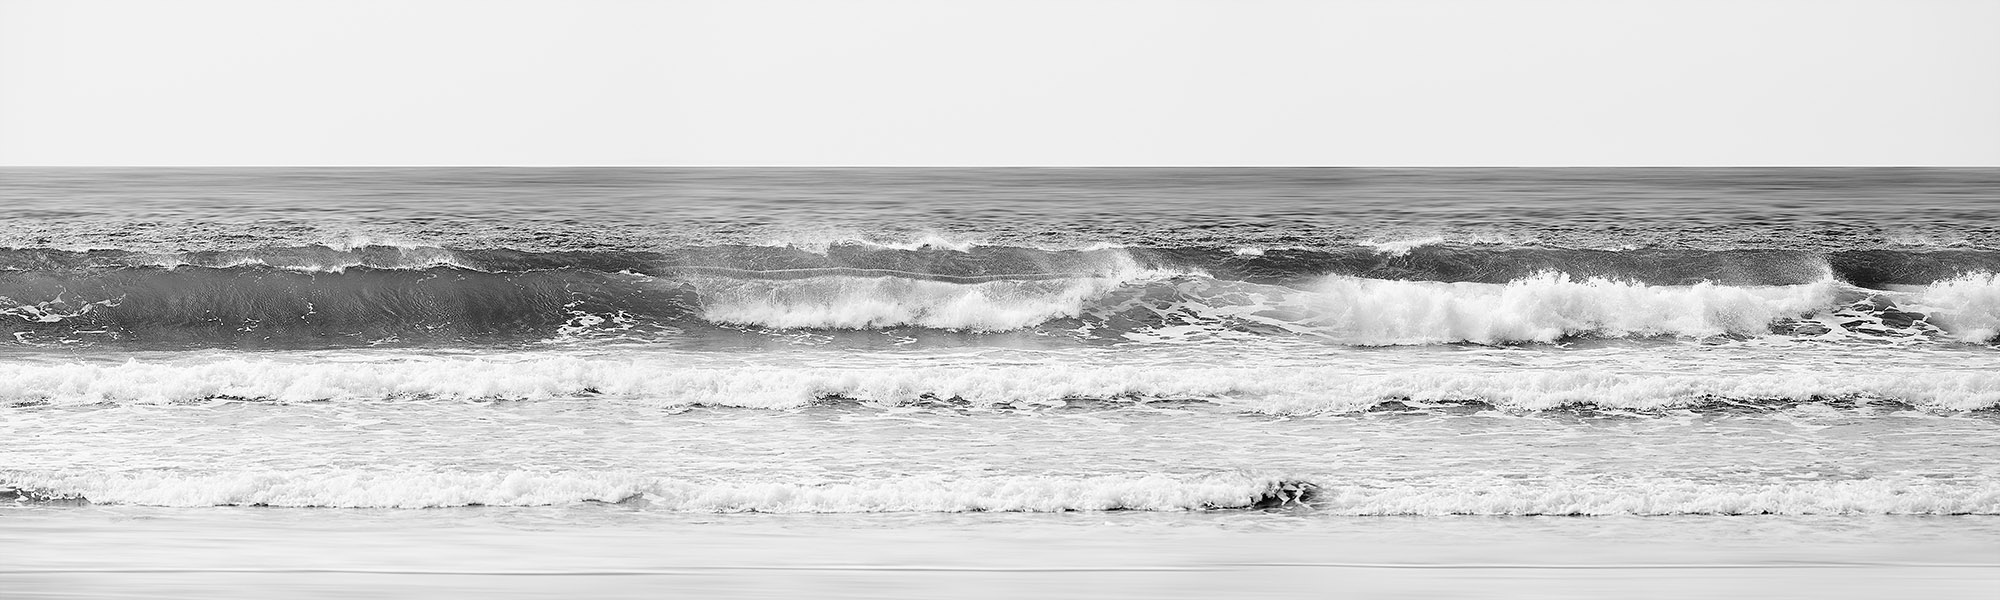 NAT2019-15 Crashing Waves (b/w)